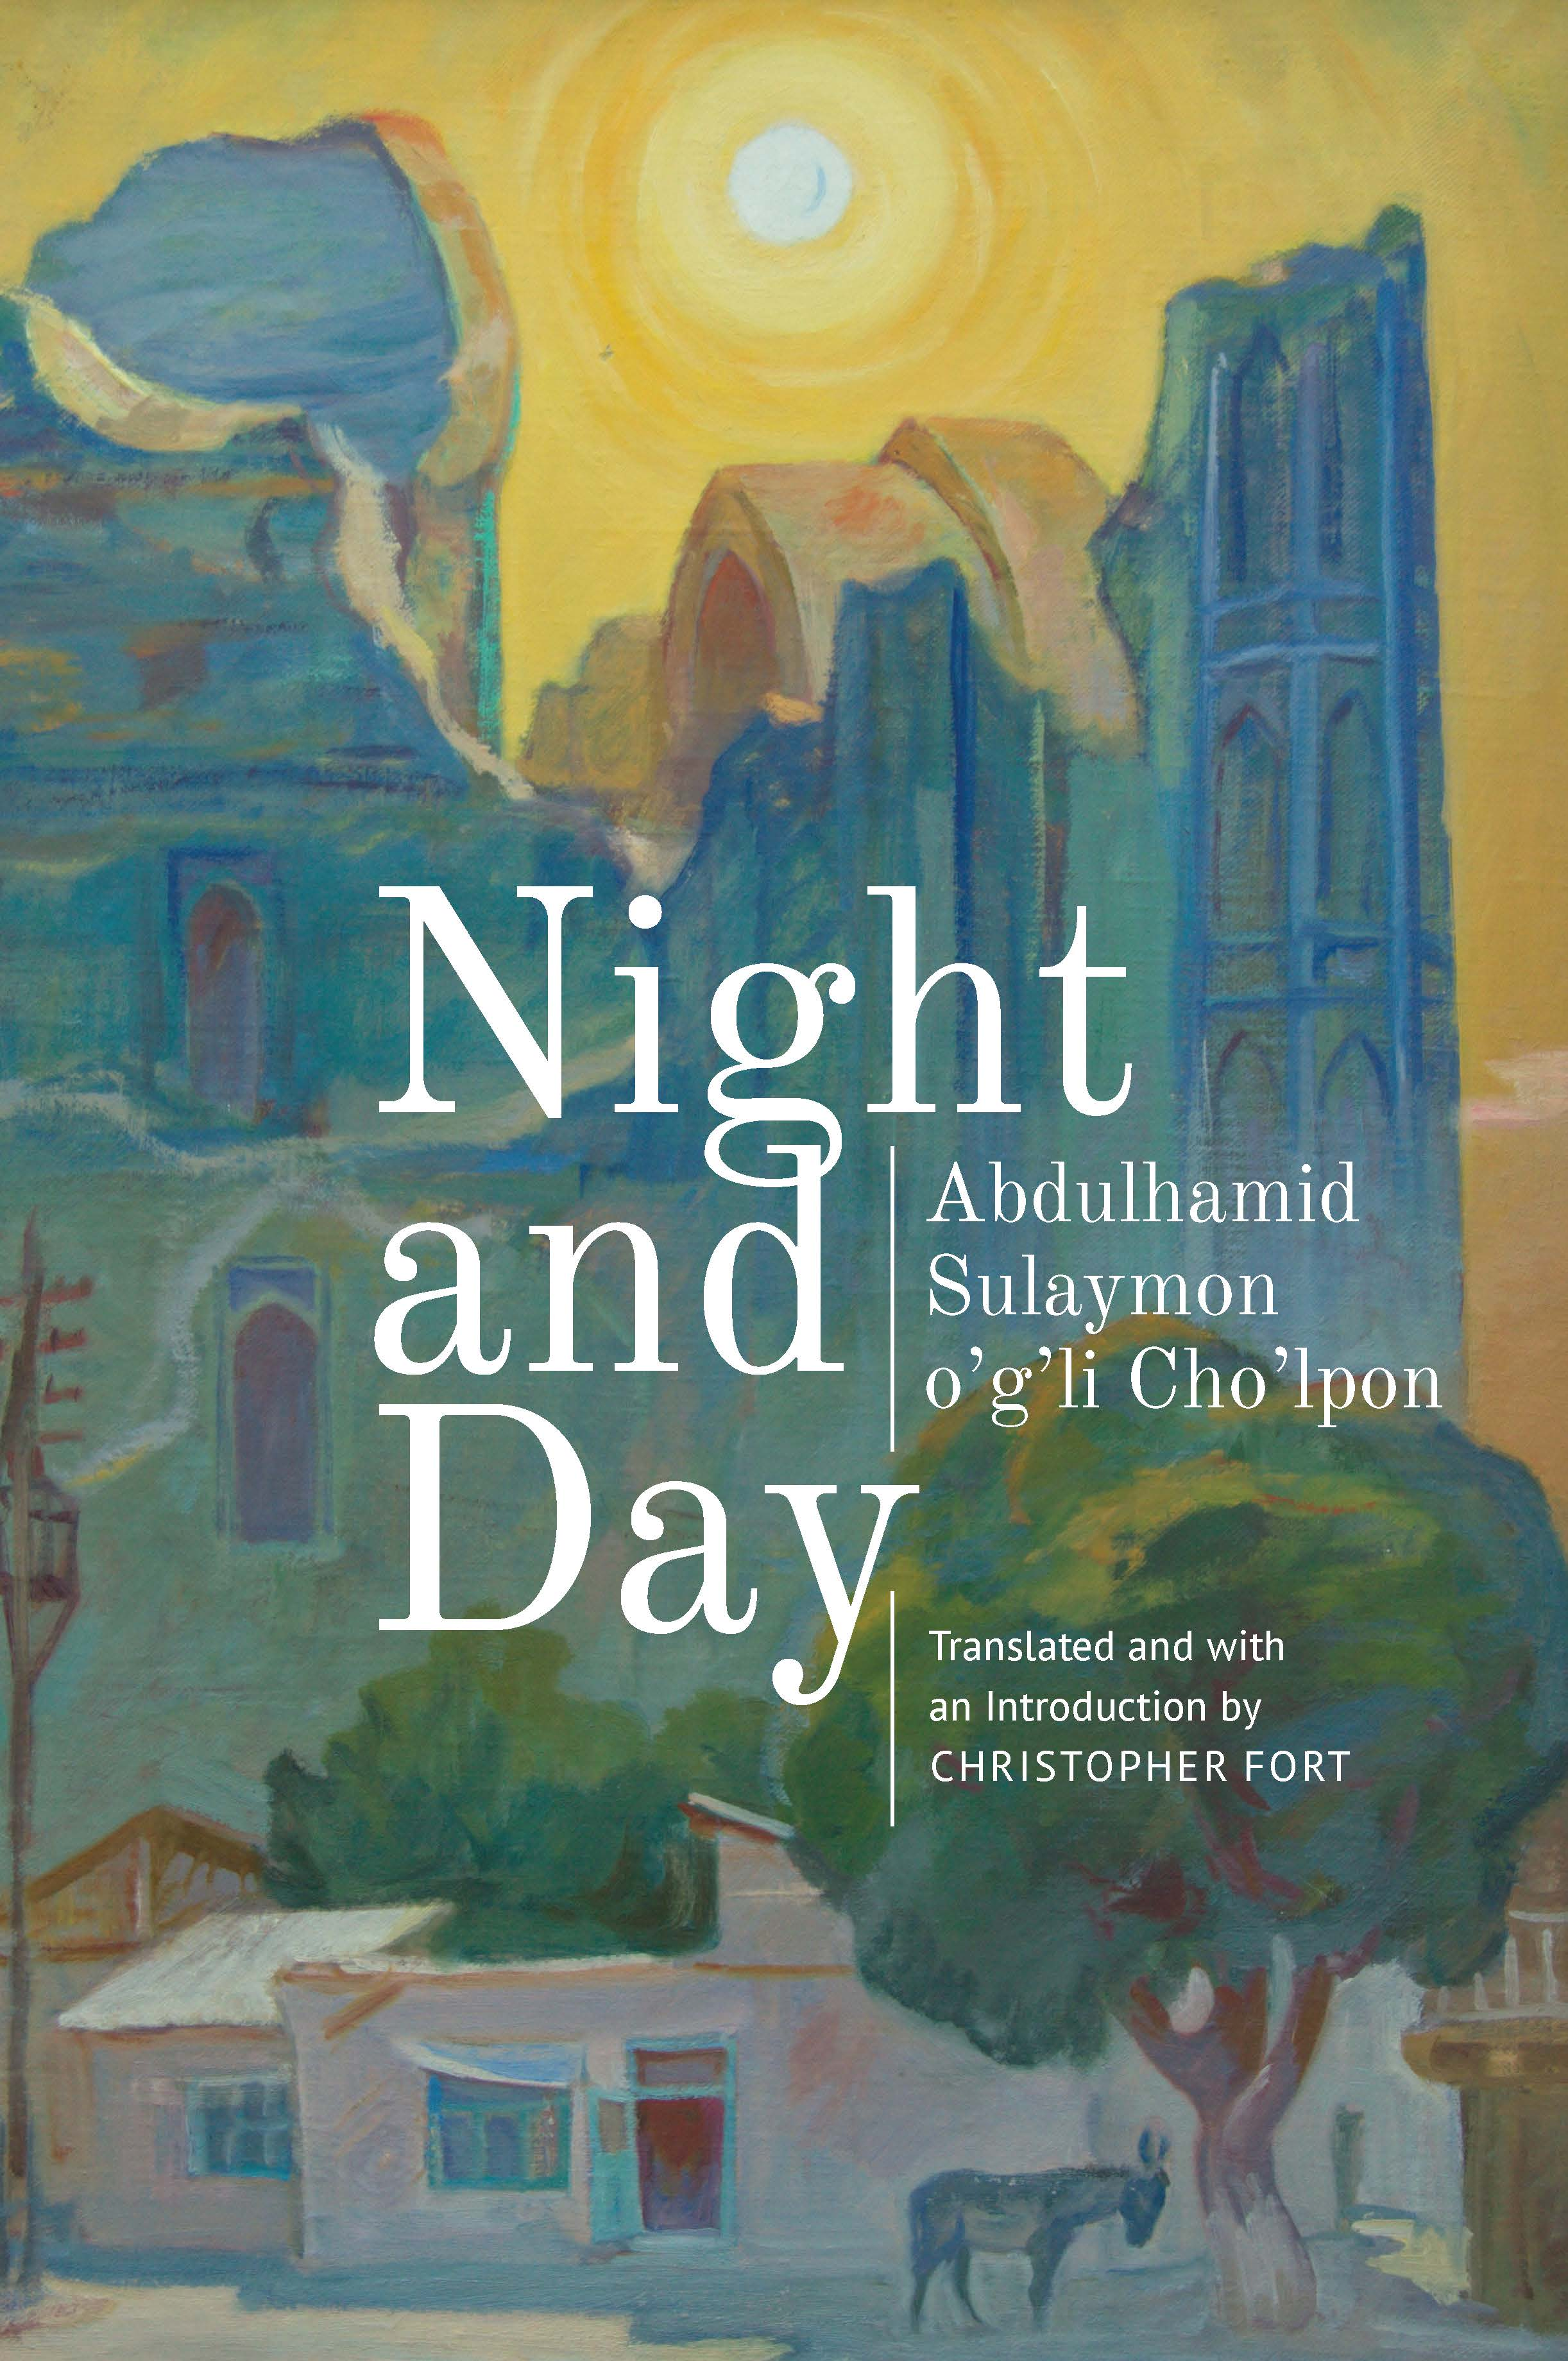 Night and Day    by Abdulhamid Sulaymon o'g'li Cho'lpon, translated from the Uzbek by Christopher Fort